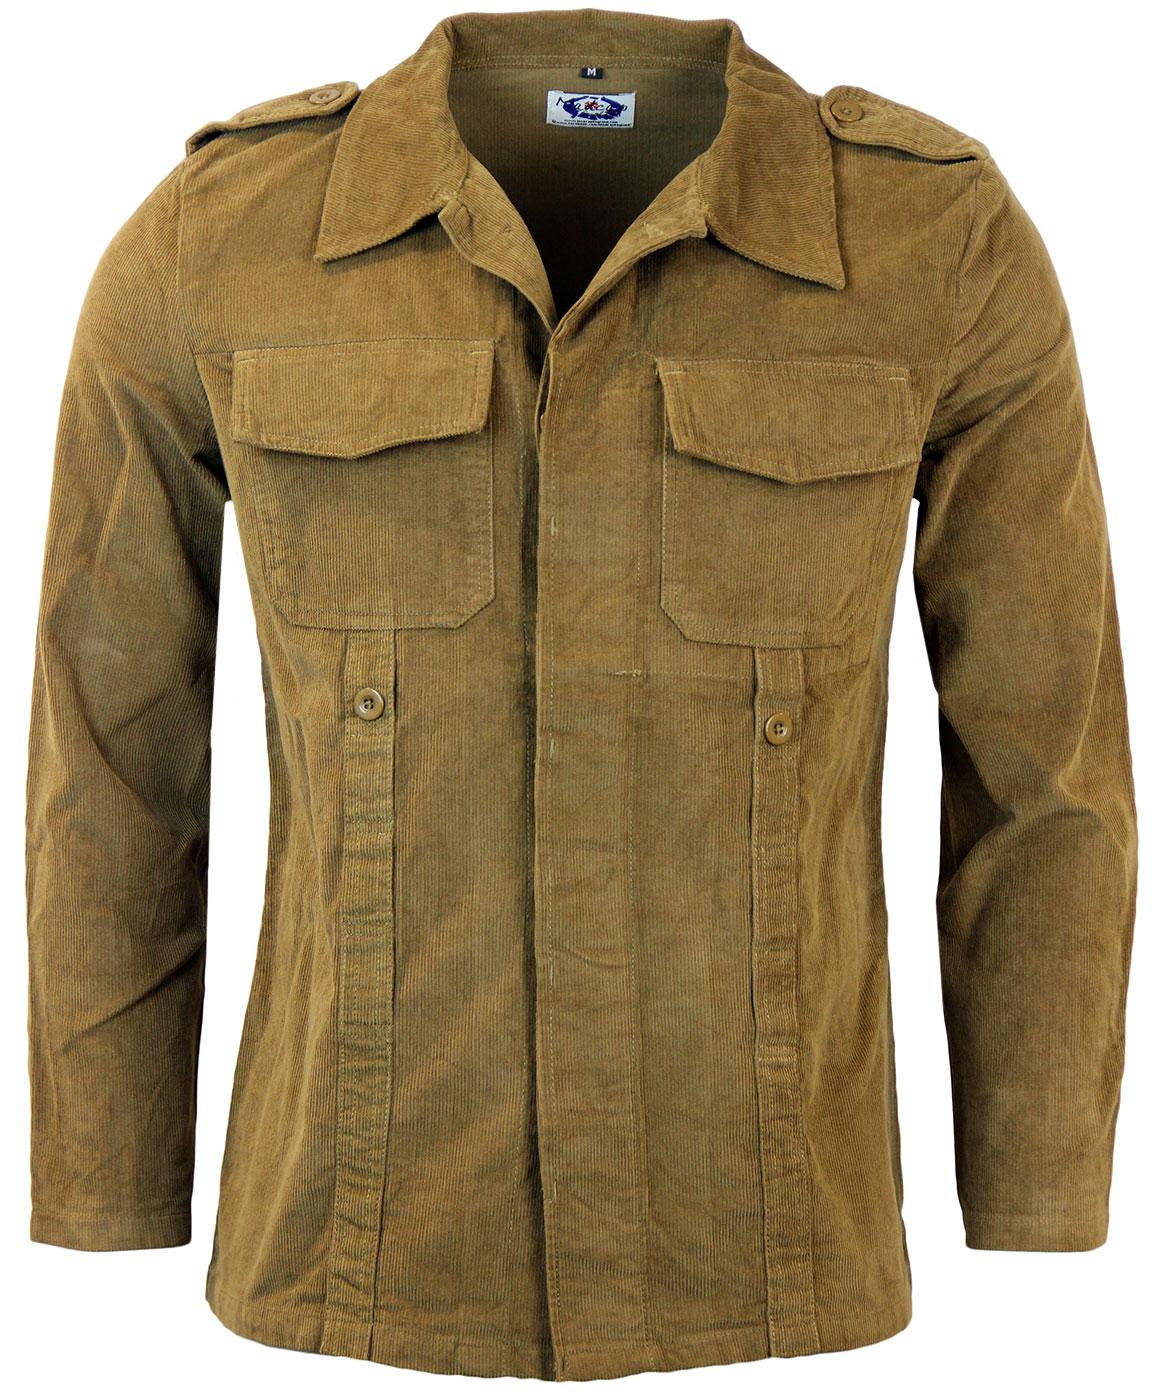 0a0392f1057 Lennon Retro Mod corduroy Military pleated jacket in camel